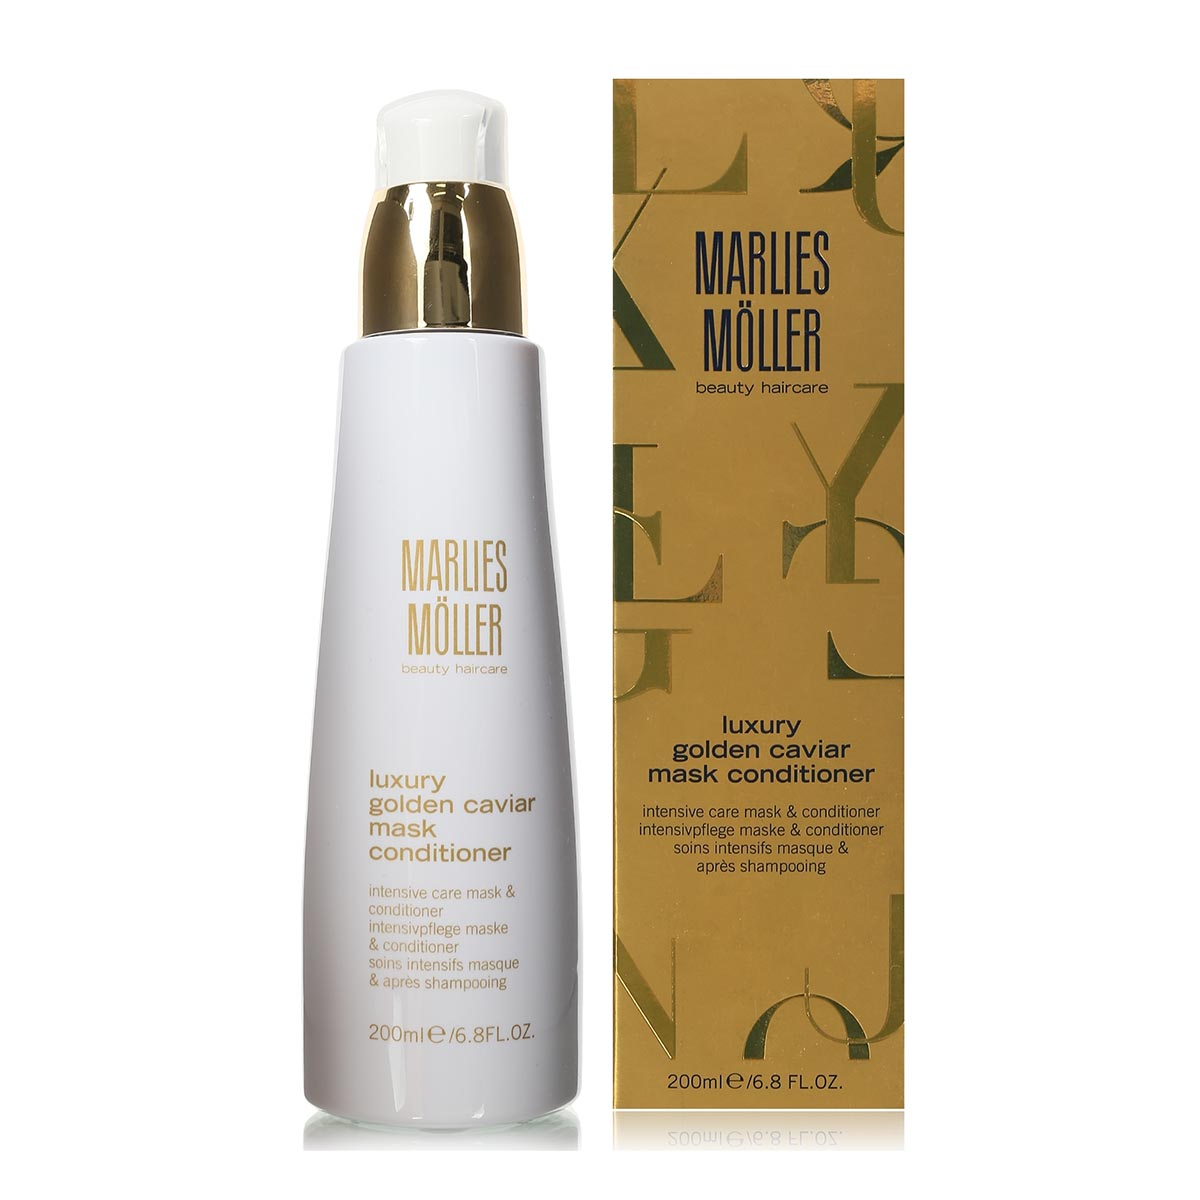 Marlies moller luxury caviar beauty mascarilla acondicionador 200ml